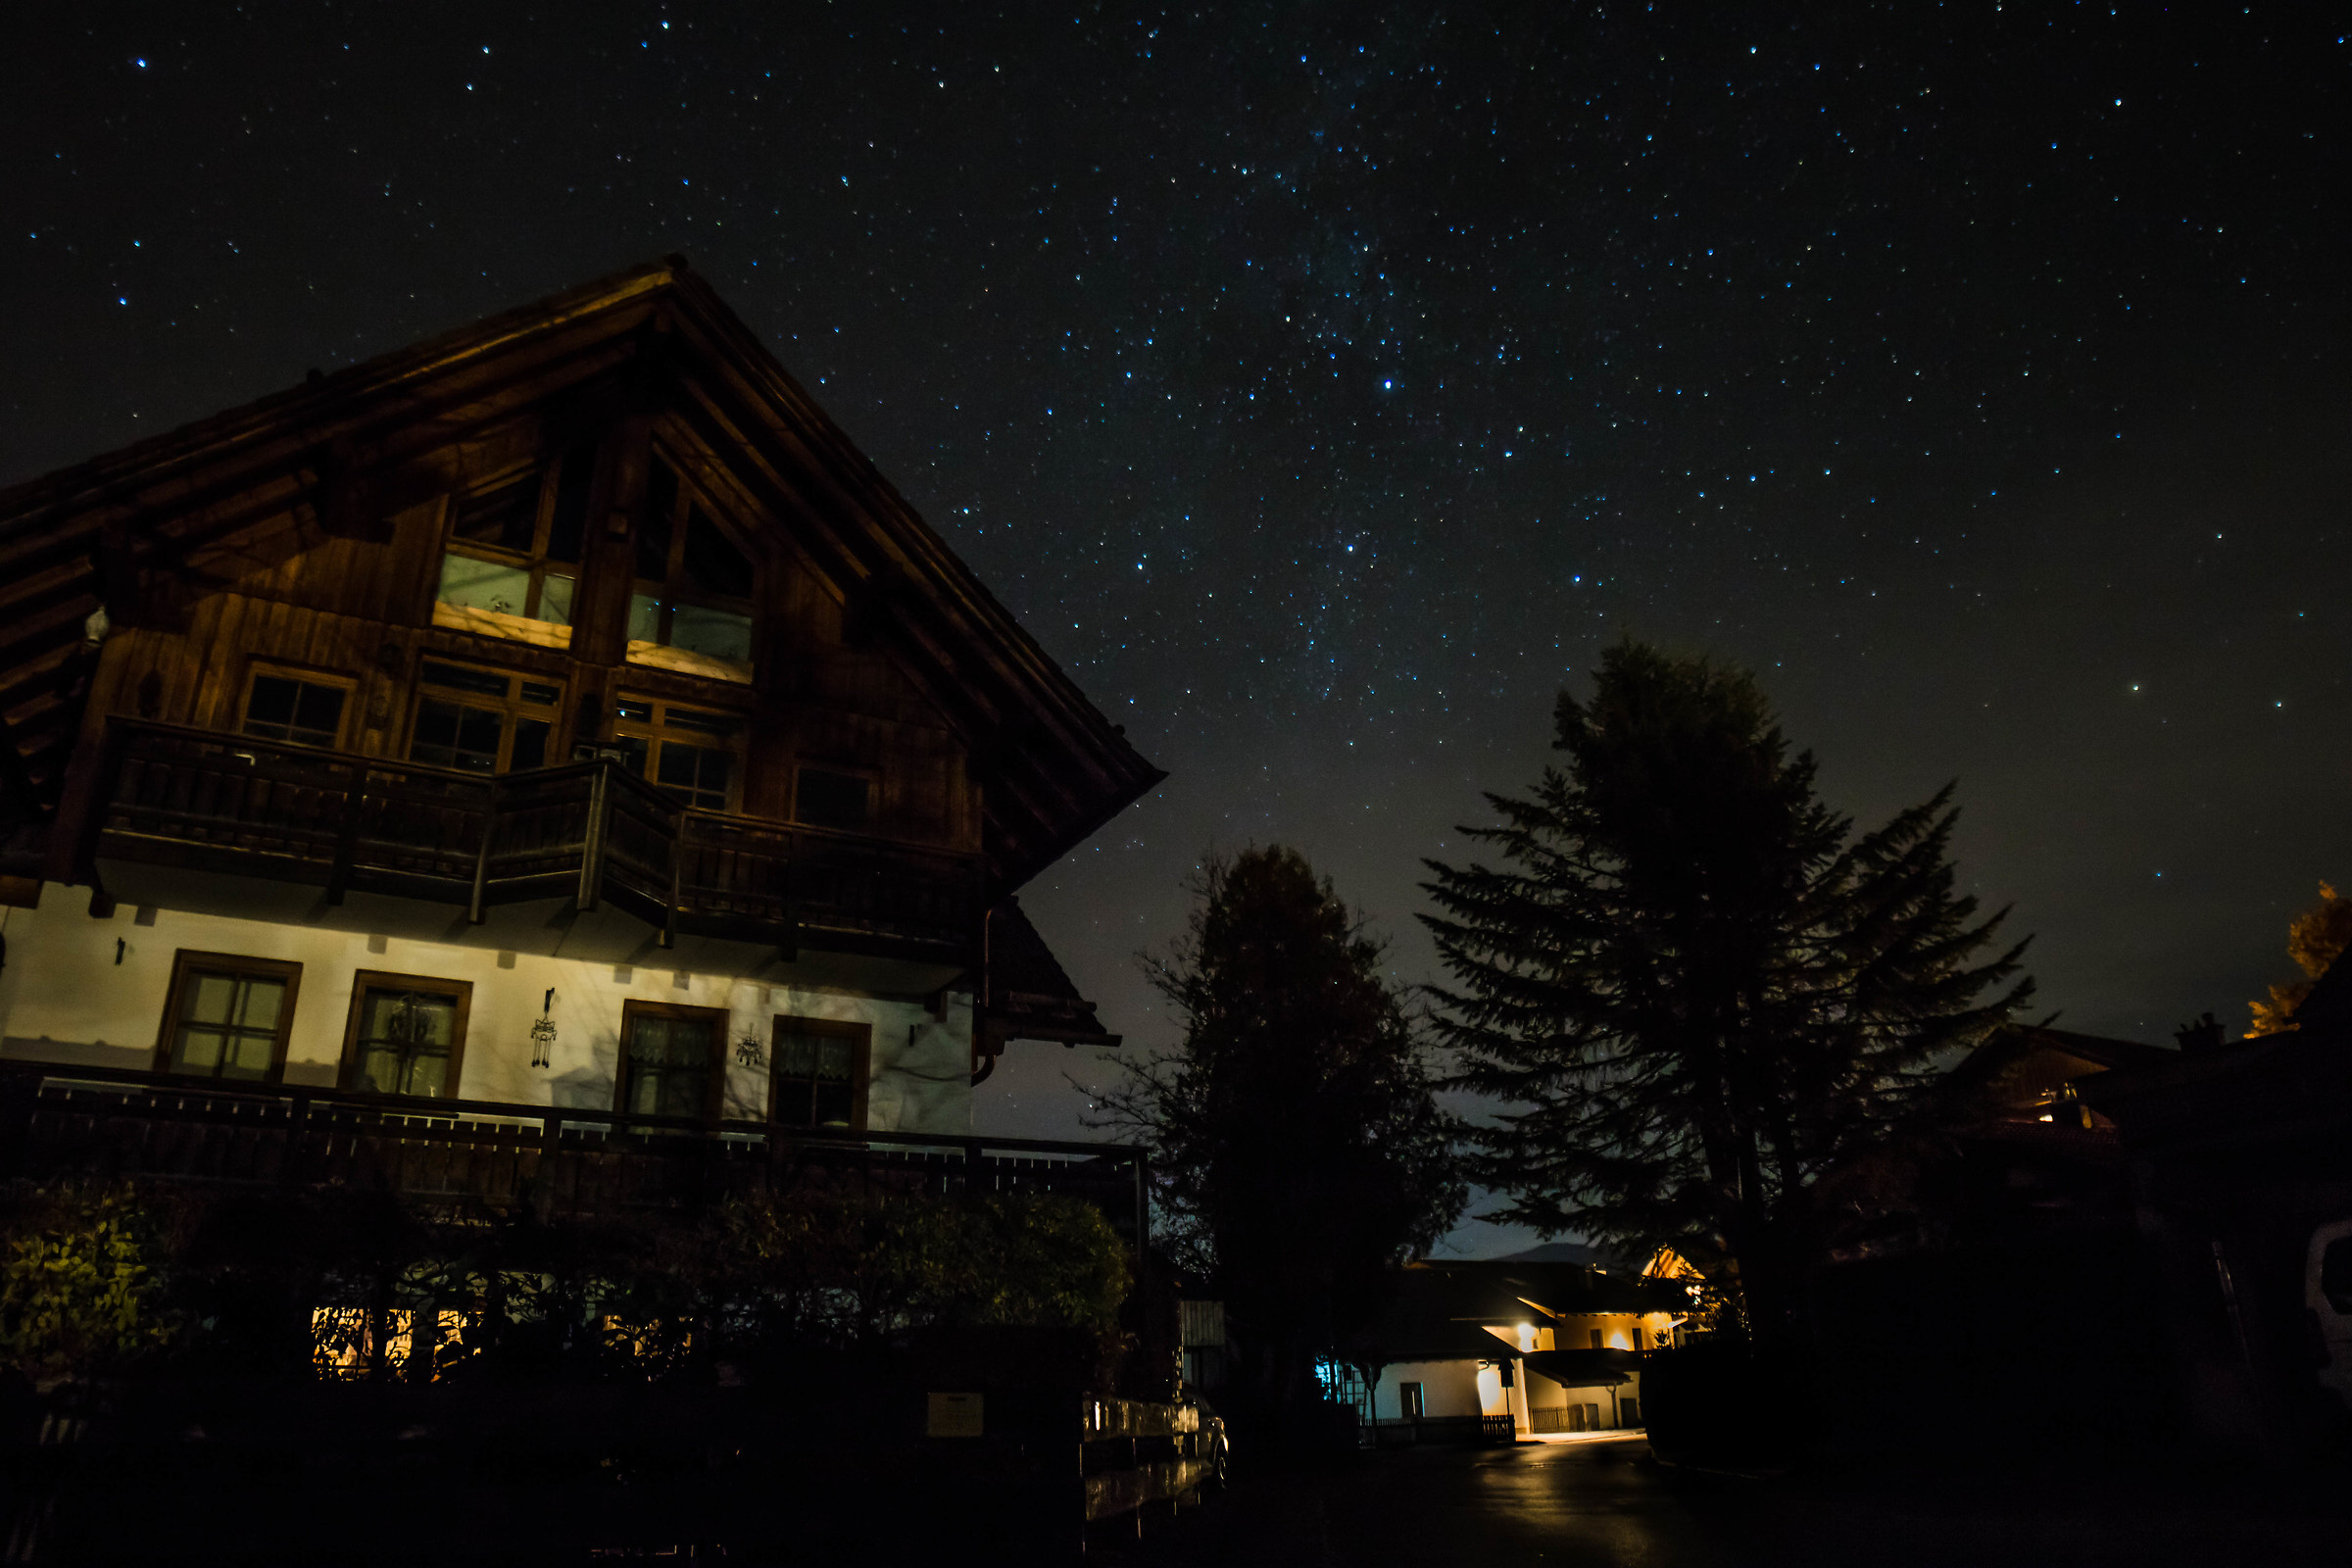 The House among the stars...